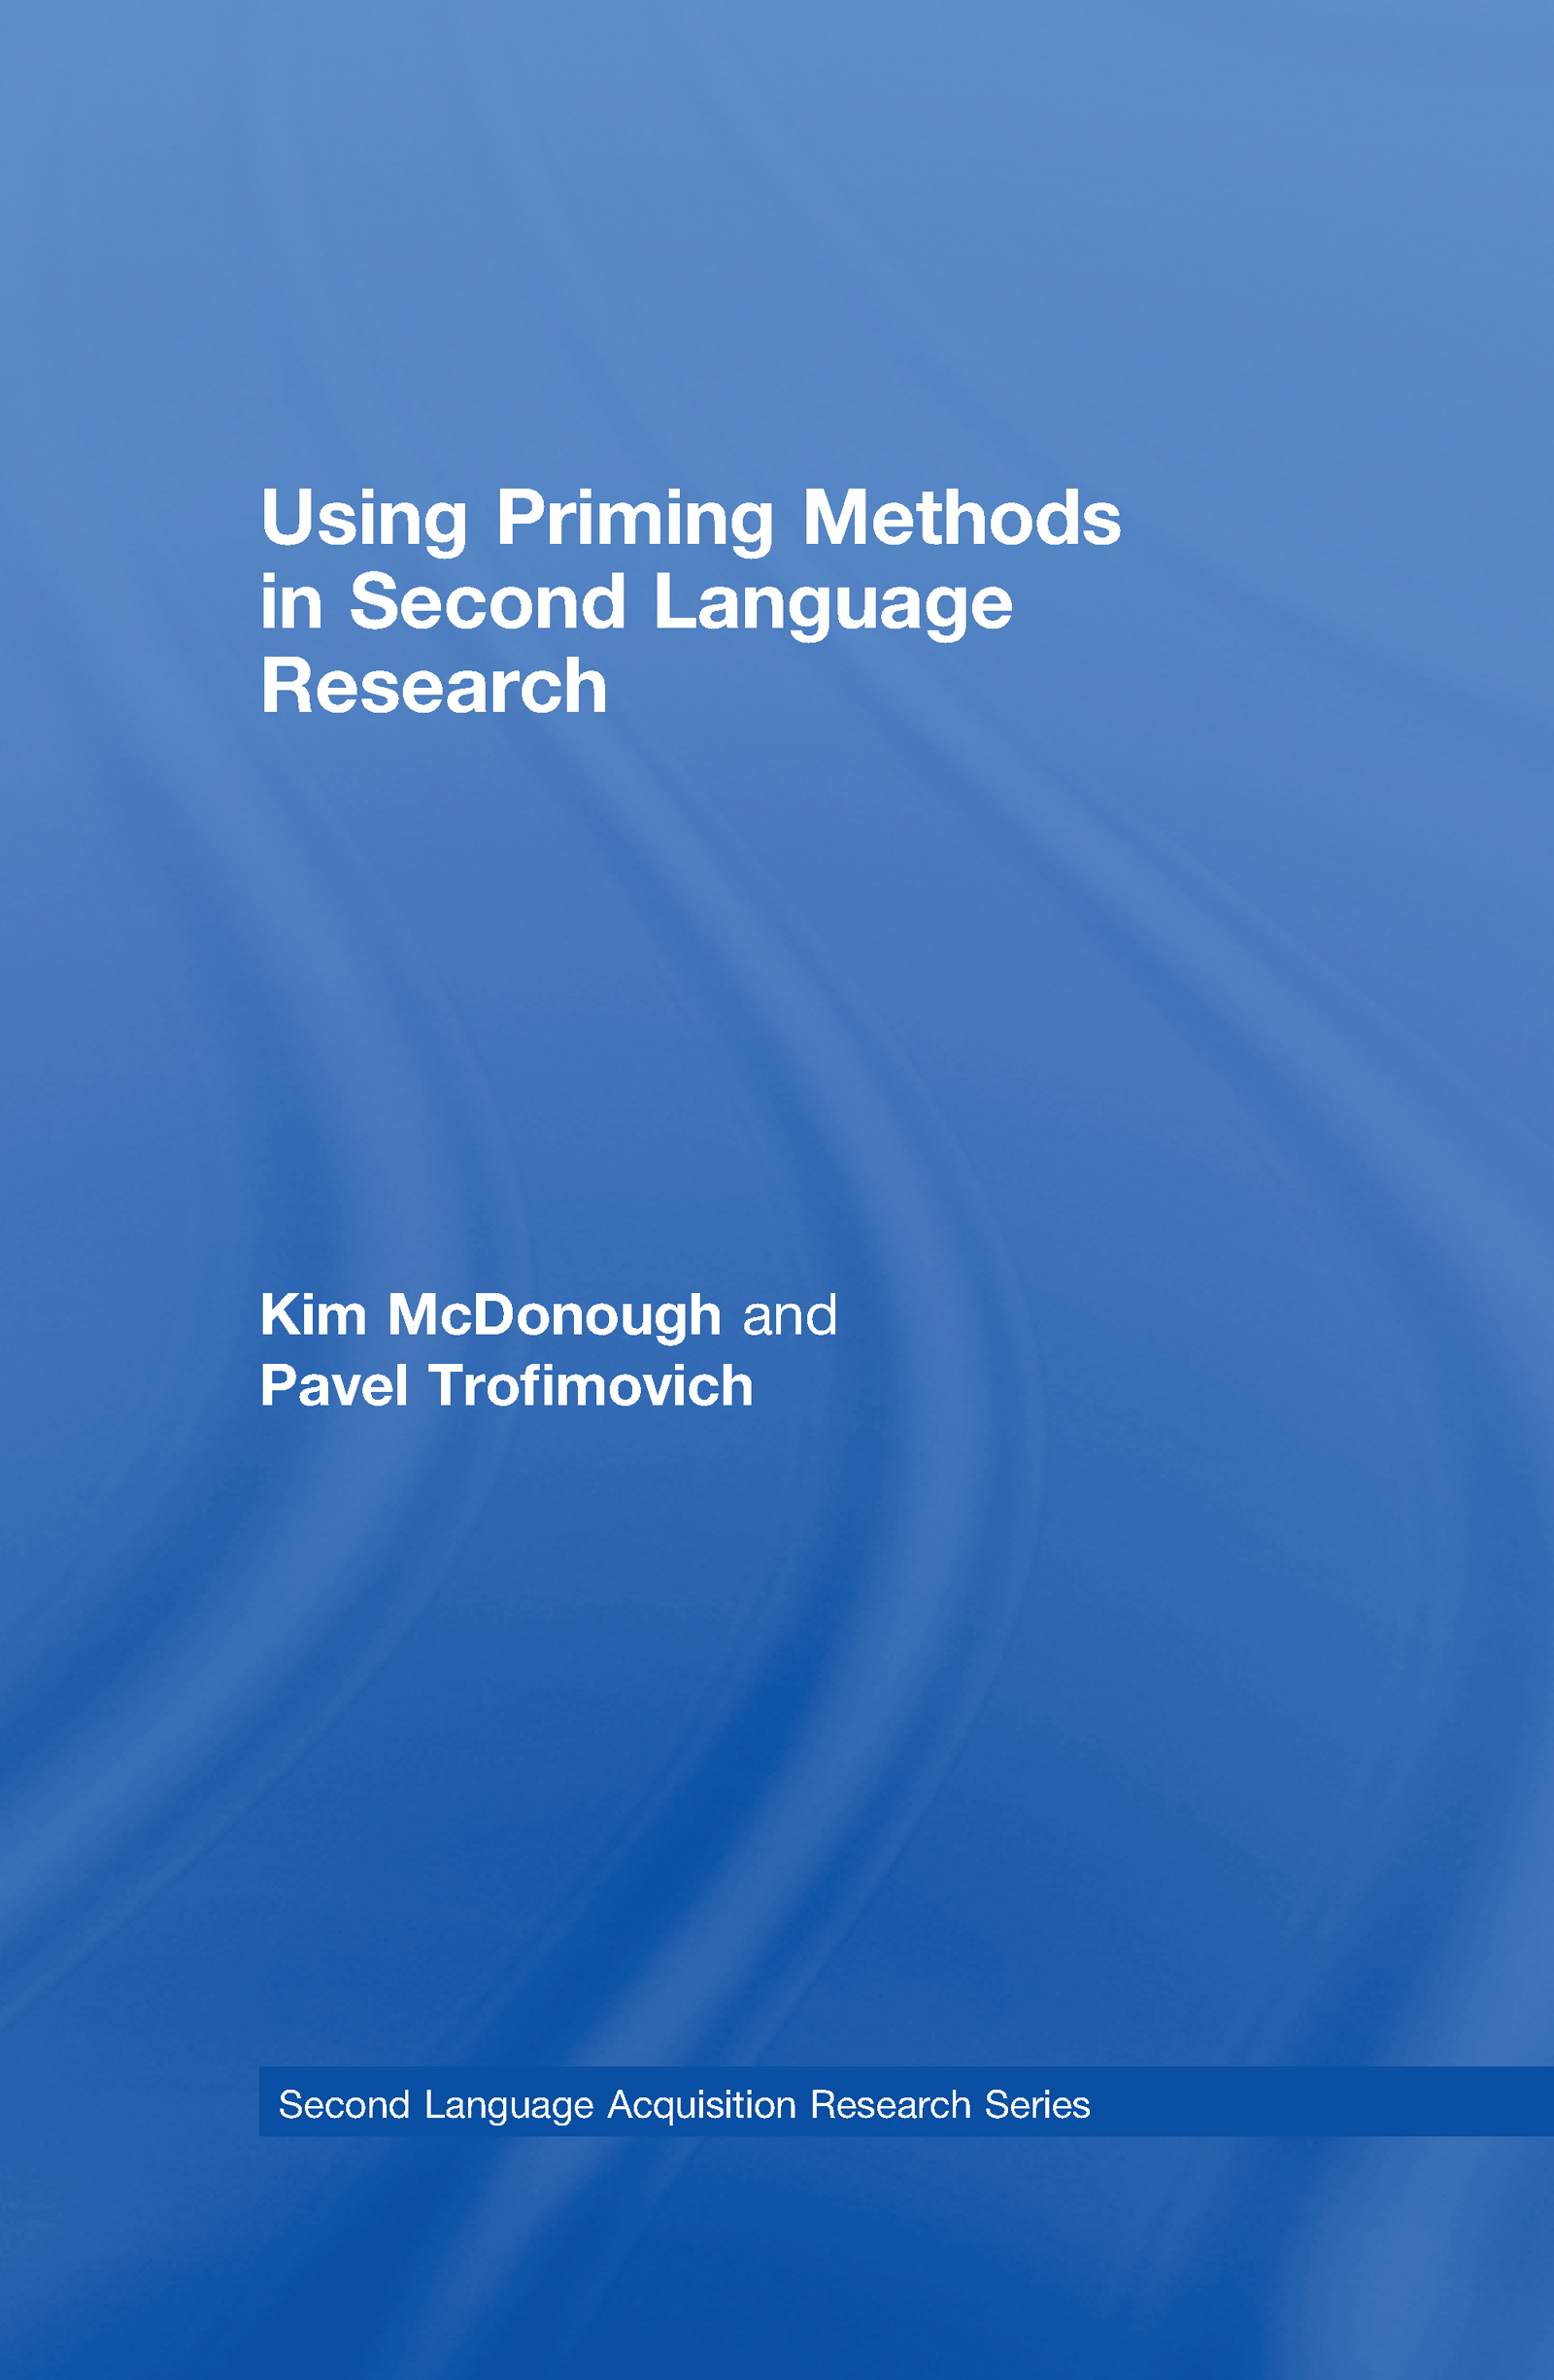 Using Priming Methods in Second Language Research